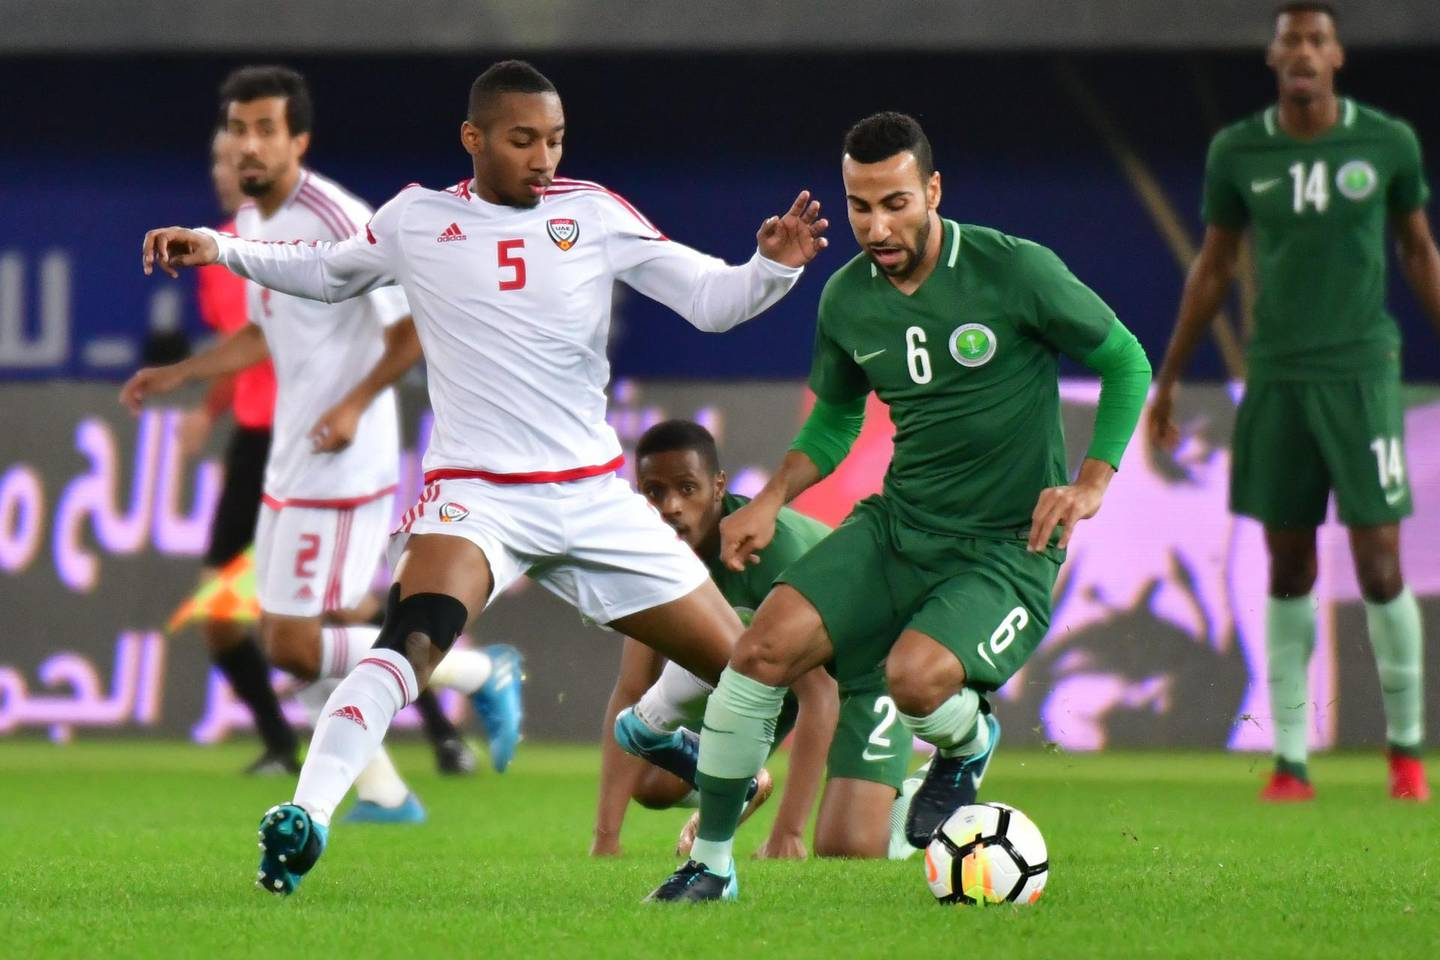 Saudi's Nooh Al-Mousa (2-R) vies for the ball with Emirates' Ali Salmeen al-Bloushi during the 2017 Gulf Cup of Nations football match between UAE and Saudi Arabia at the Sheikh Jaber al-Ahmad Stadium in Kuwait City on December 25, 2017. / AFP PHOTO / GIUSEPPE CACACE